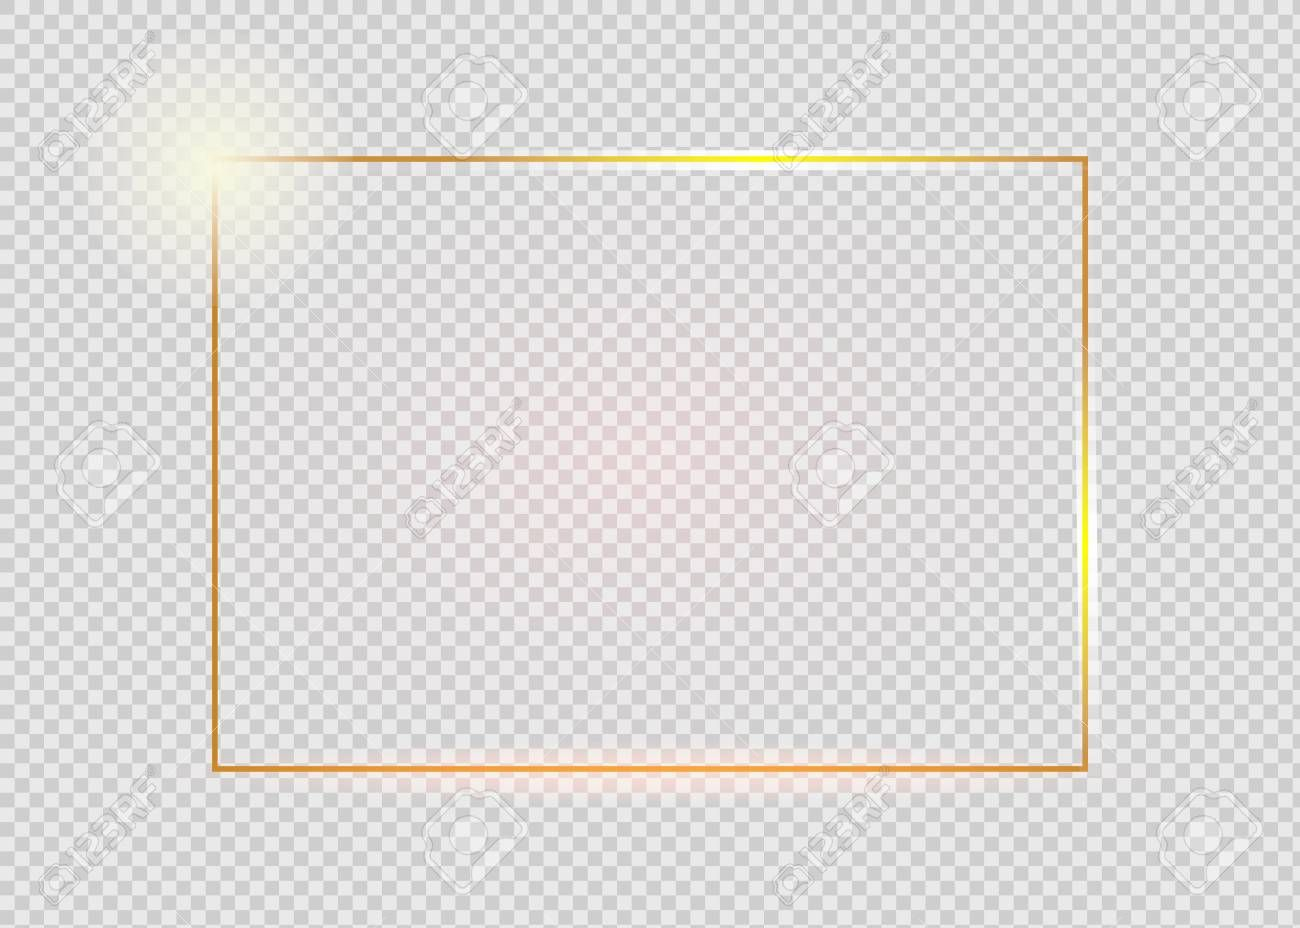 Gold Shiny Glowing Vintage Frame With Shadows Isolated On Transparent Background Golden Luxury Realistic Recta Vintage Frames Transparent Background Rectangle